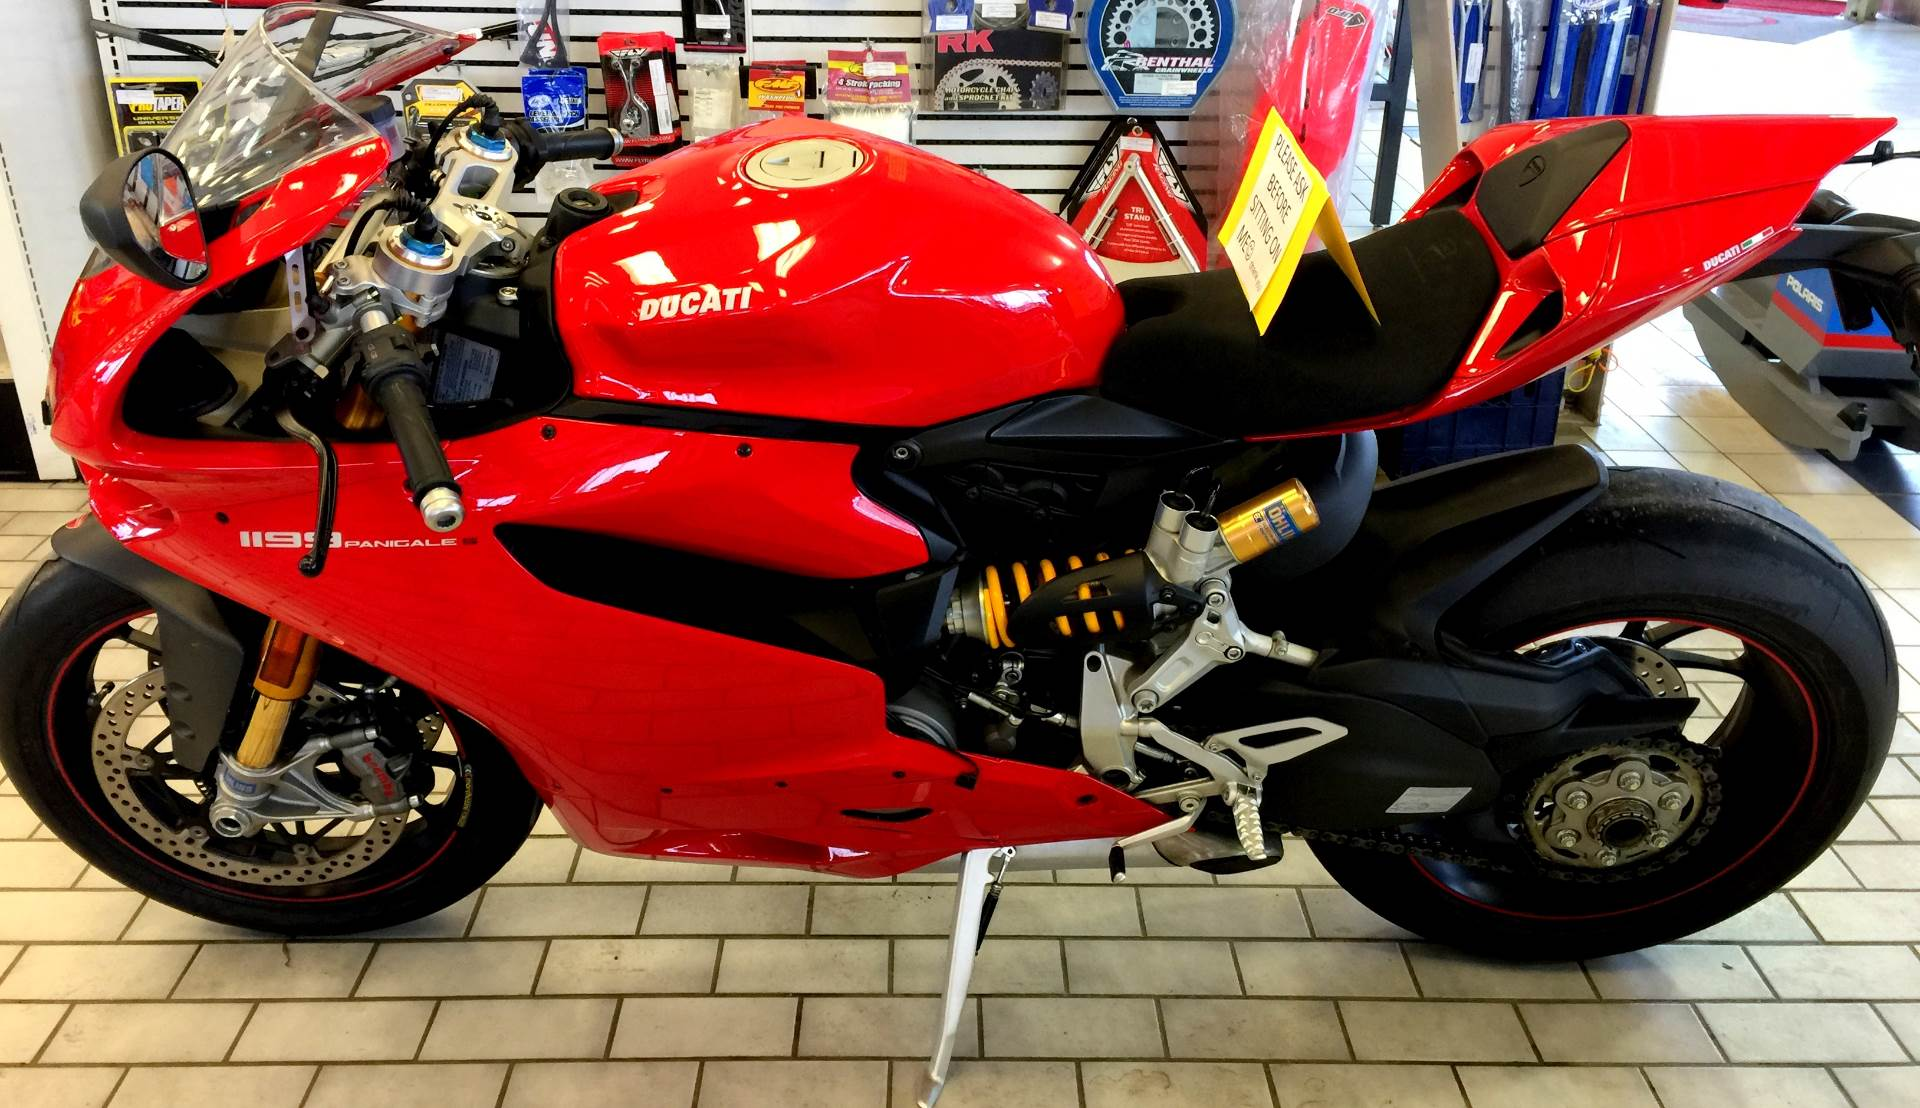 2012 1199 Panigale S